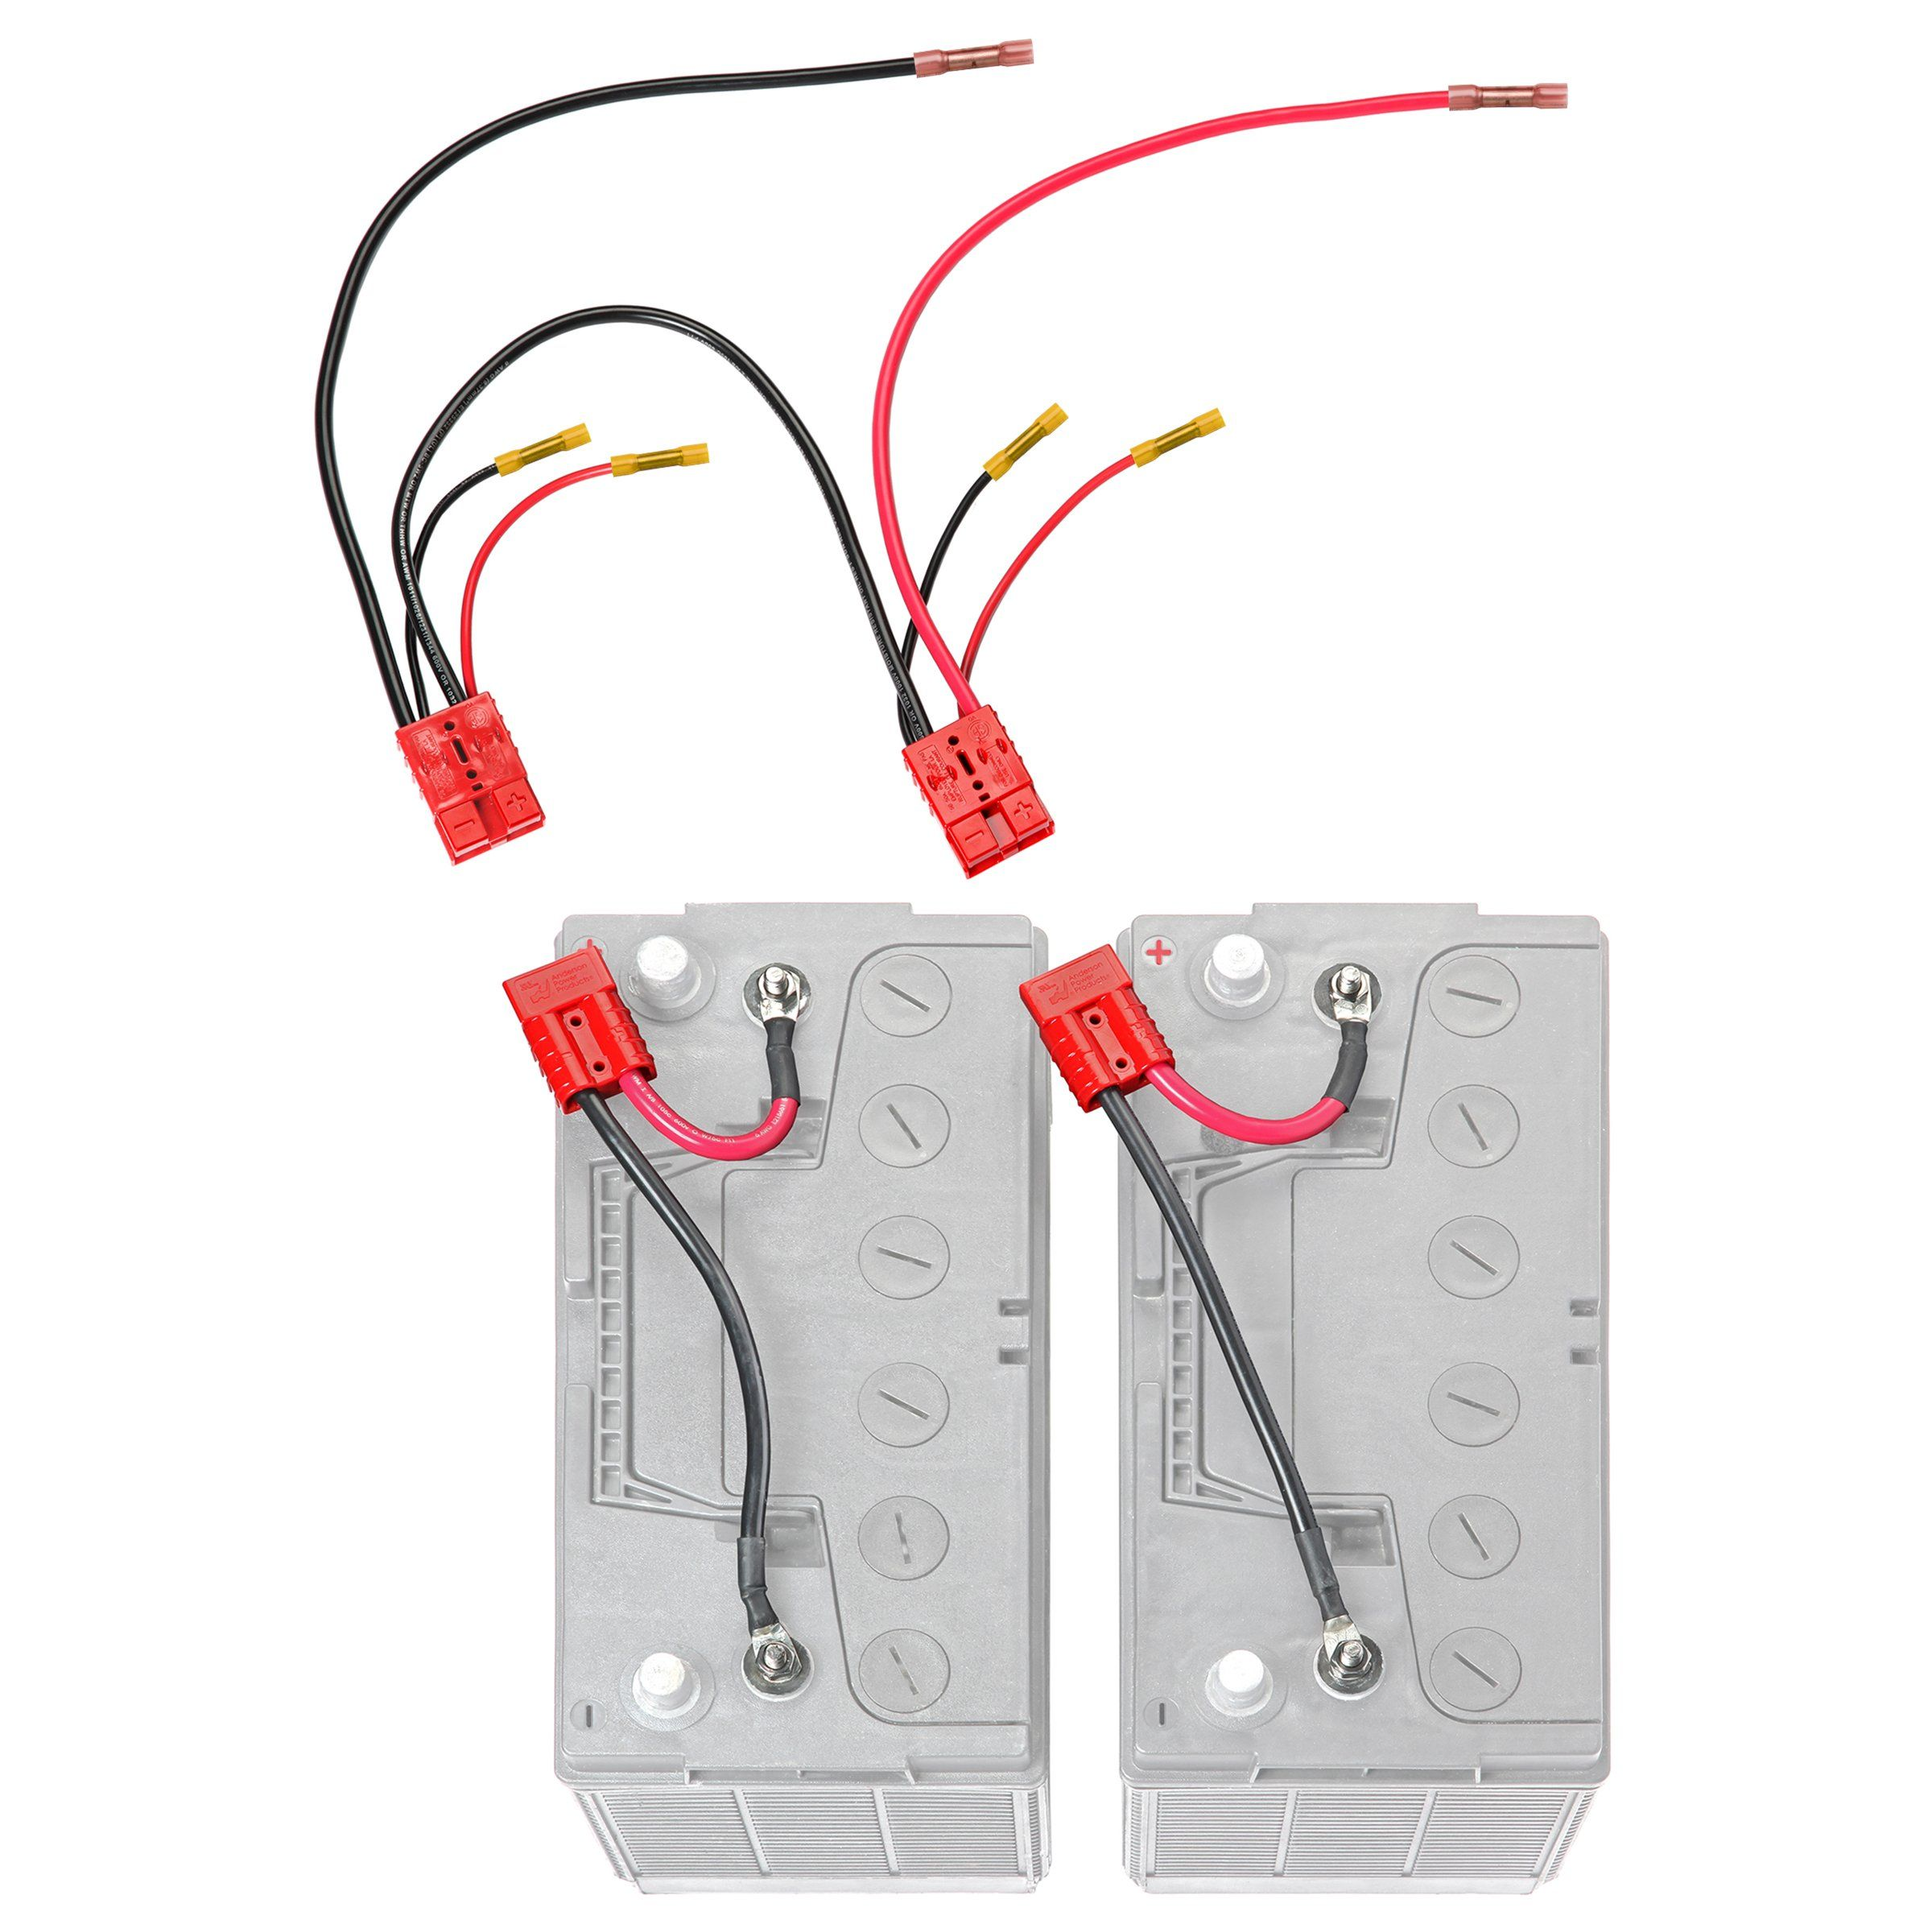 24 Volt Series Trolling Motor Connection Kit With On Board Charging Rce24vbchk Trolling Motor Boat Wiring Marine Equipment